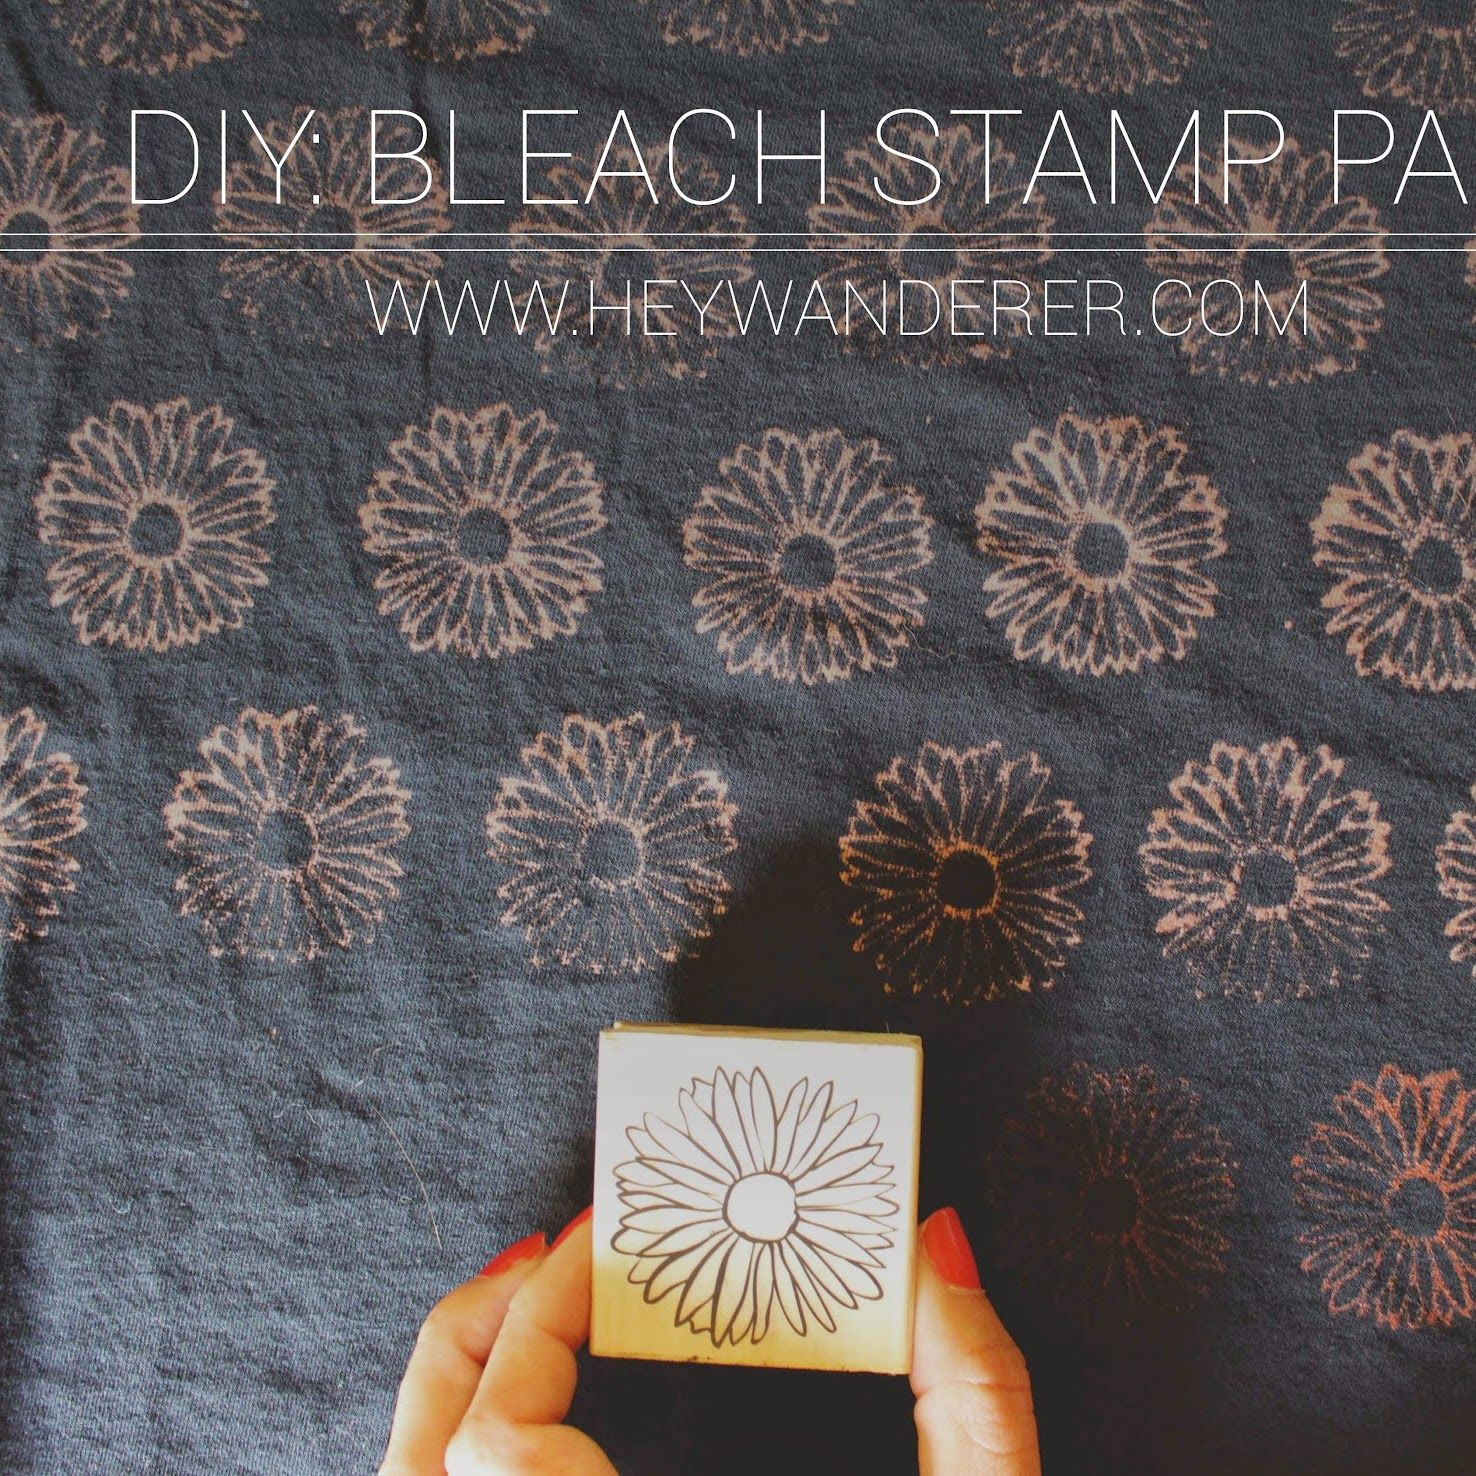 diy: bleach stamp pad #fabricstamping